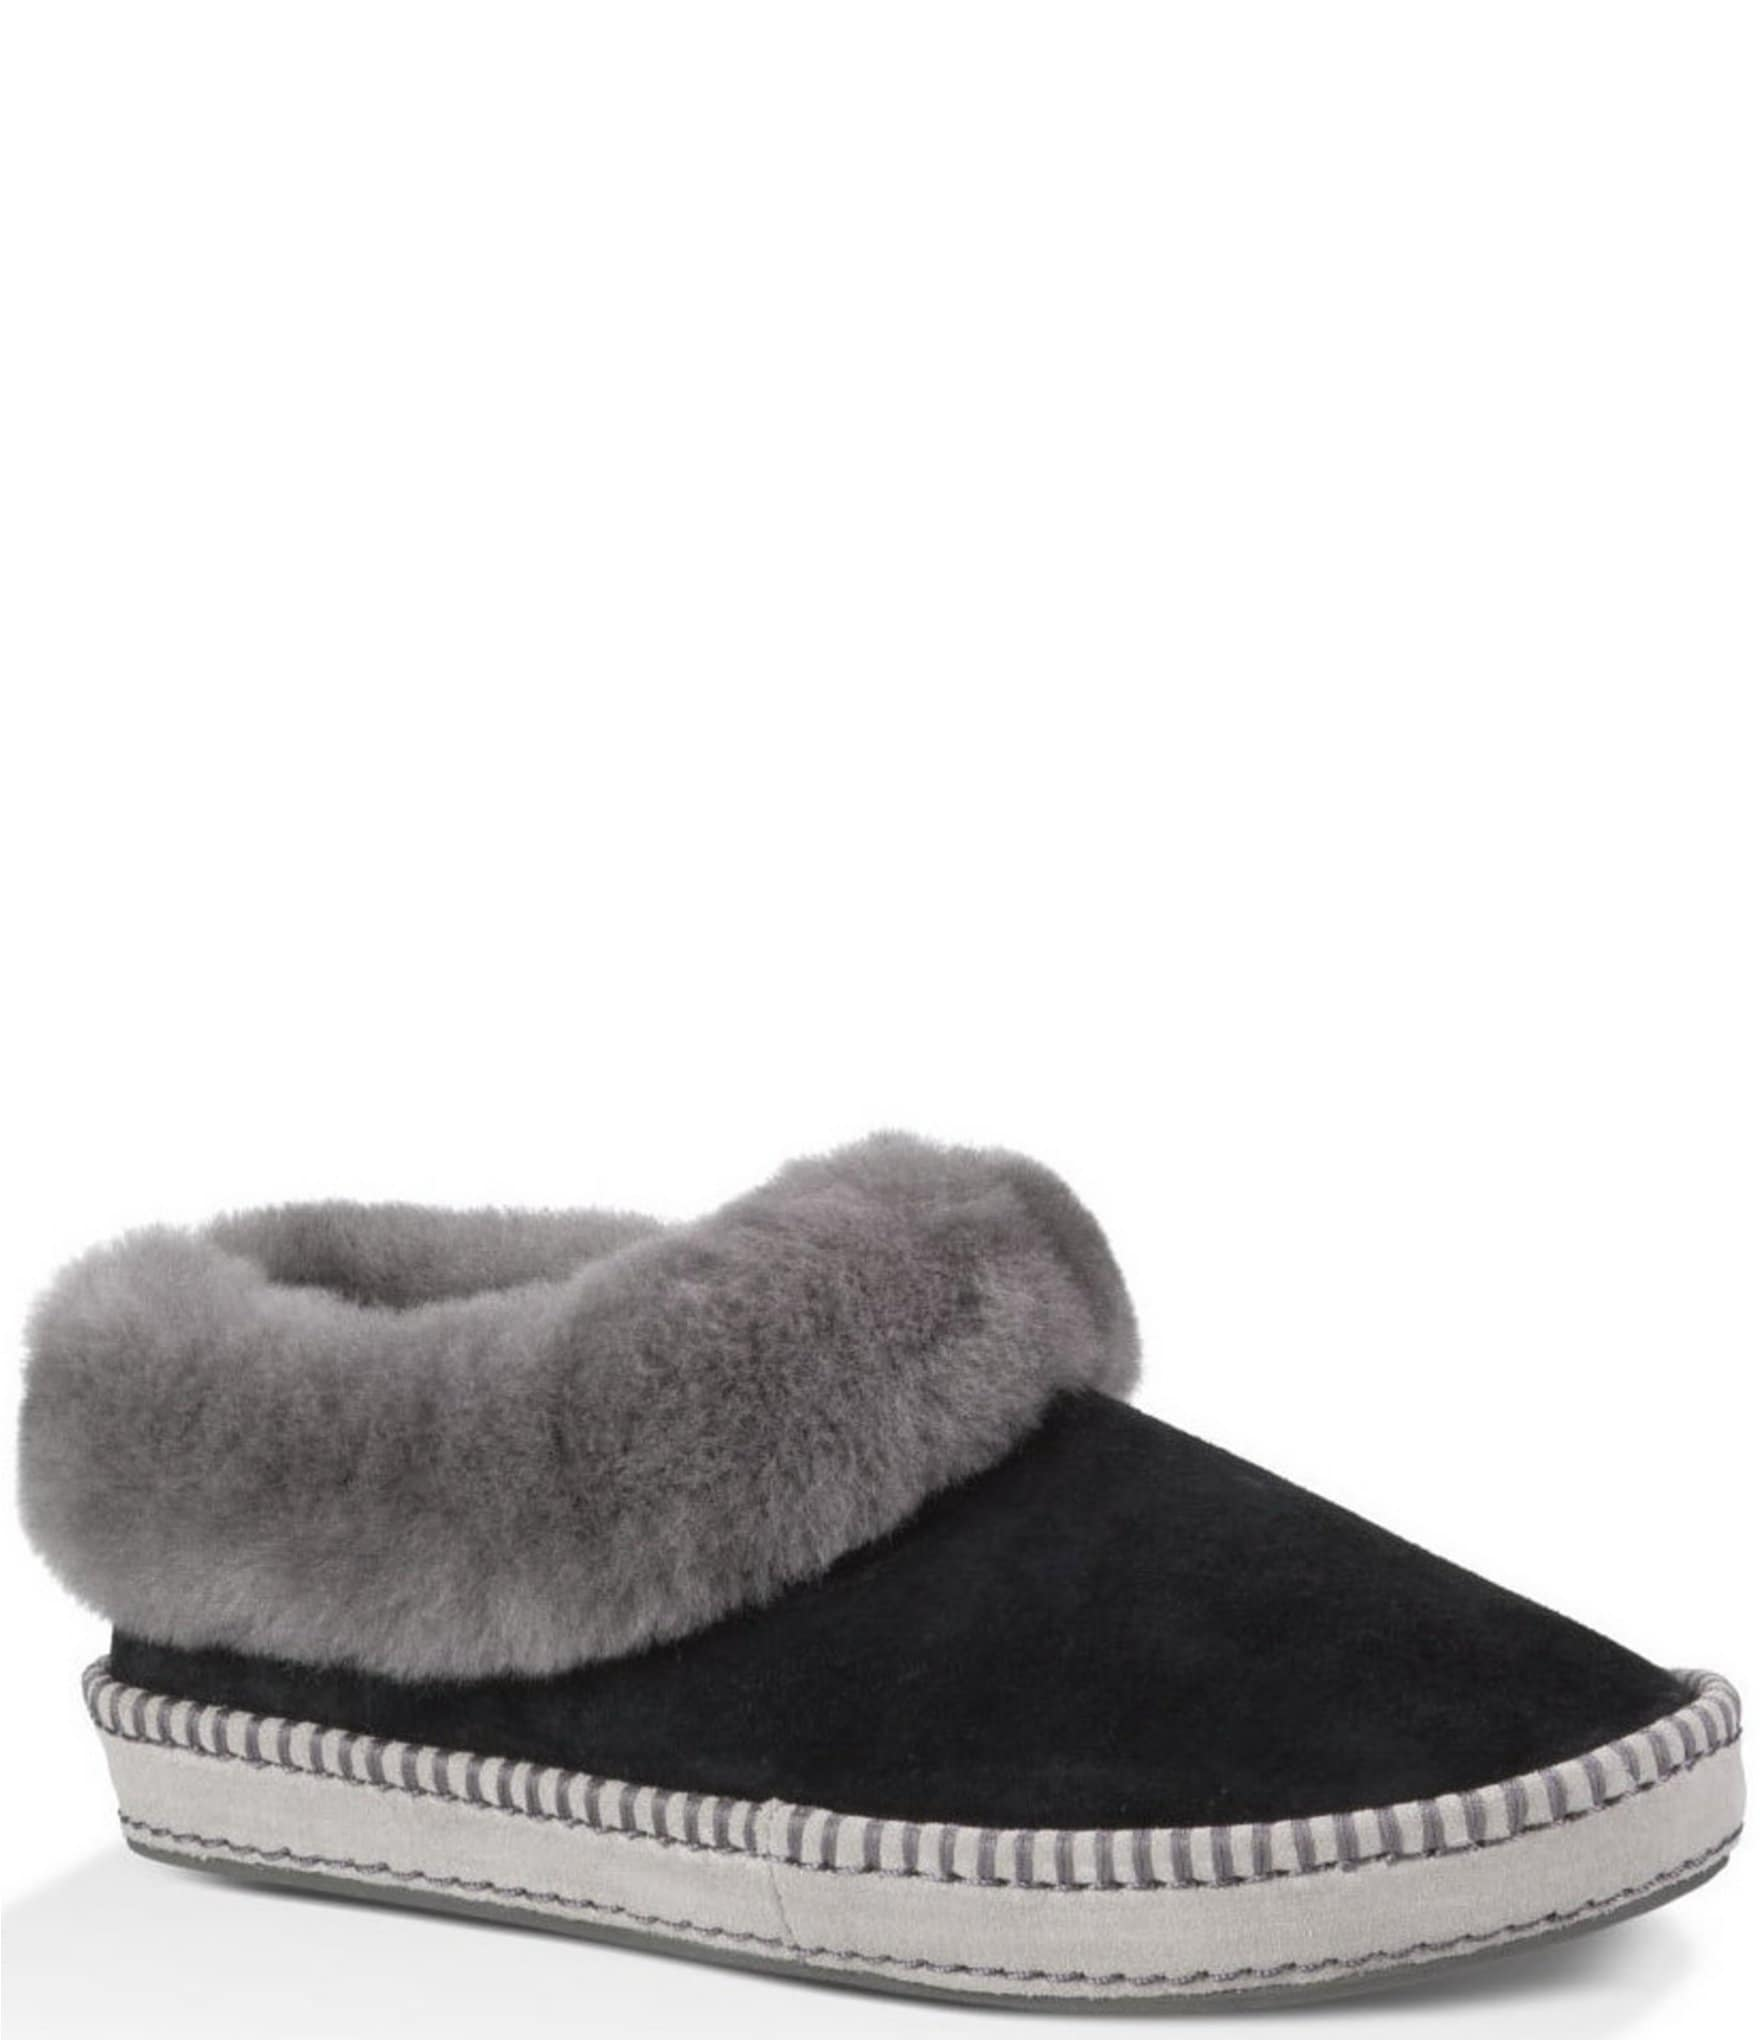 2a842f62586 UGG® Wrin Sheepskin Collar Water-Resistant Slippers